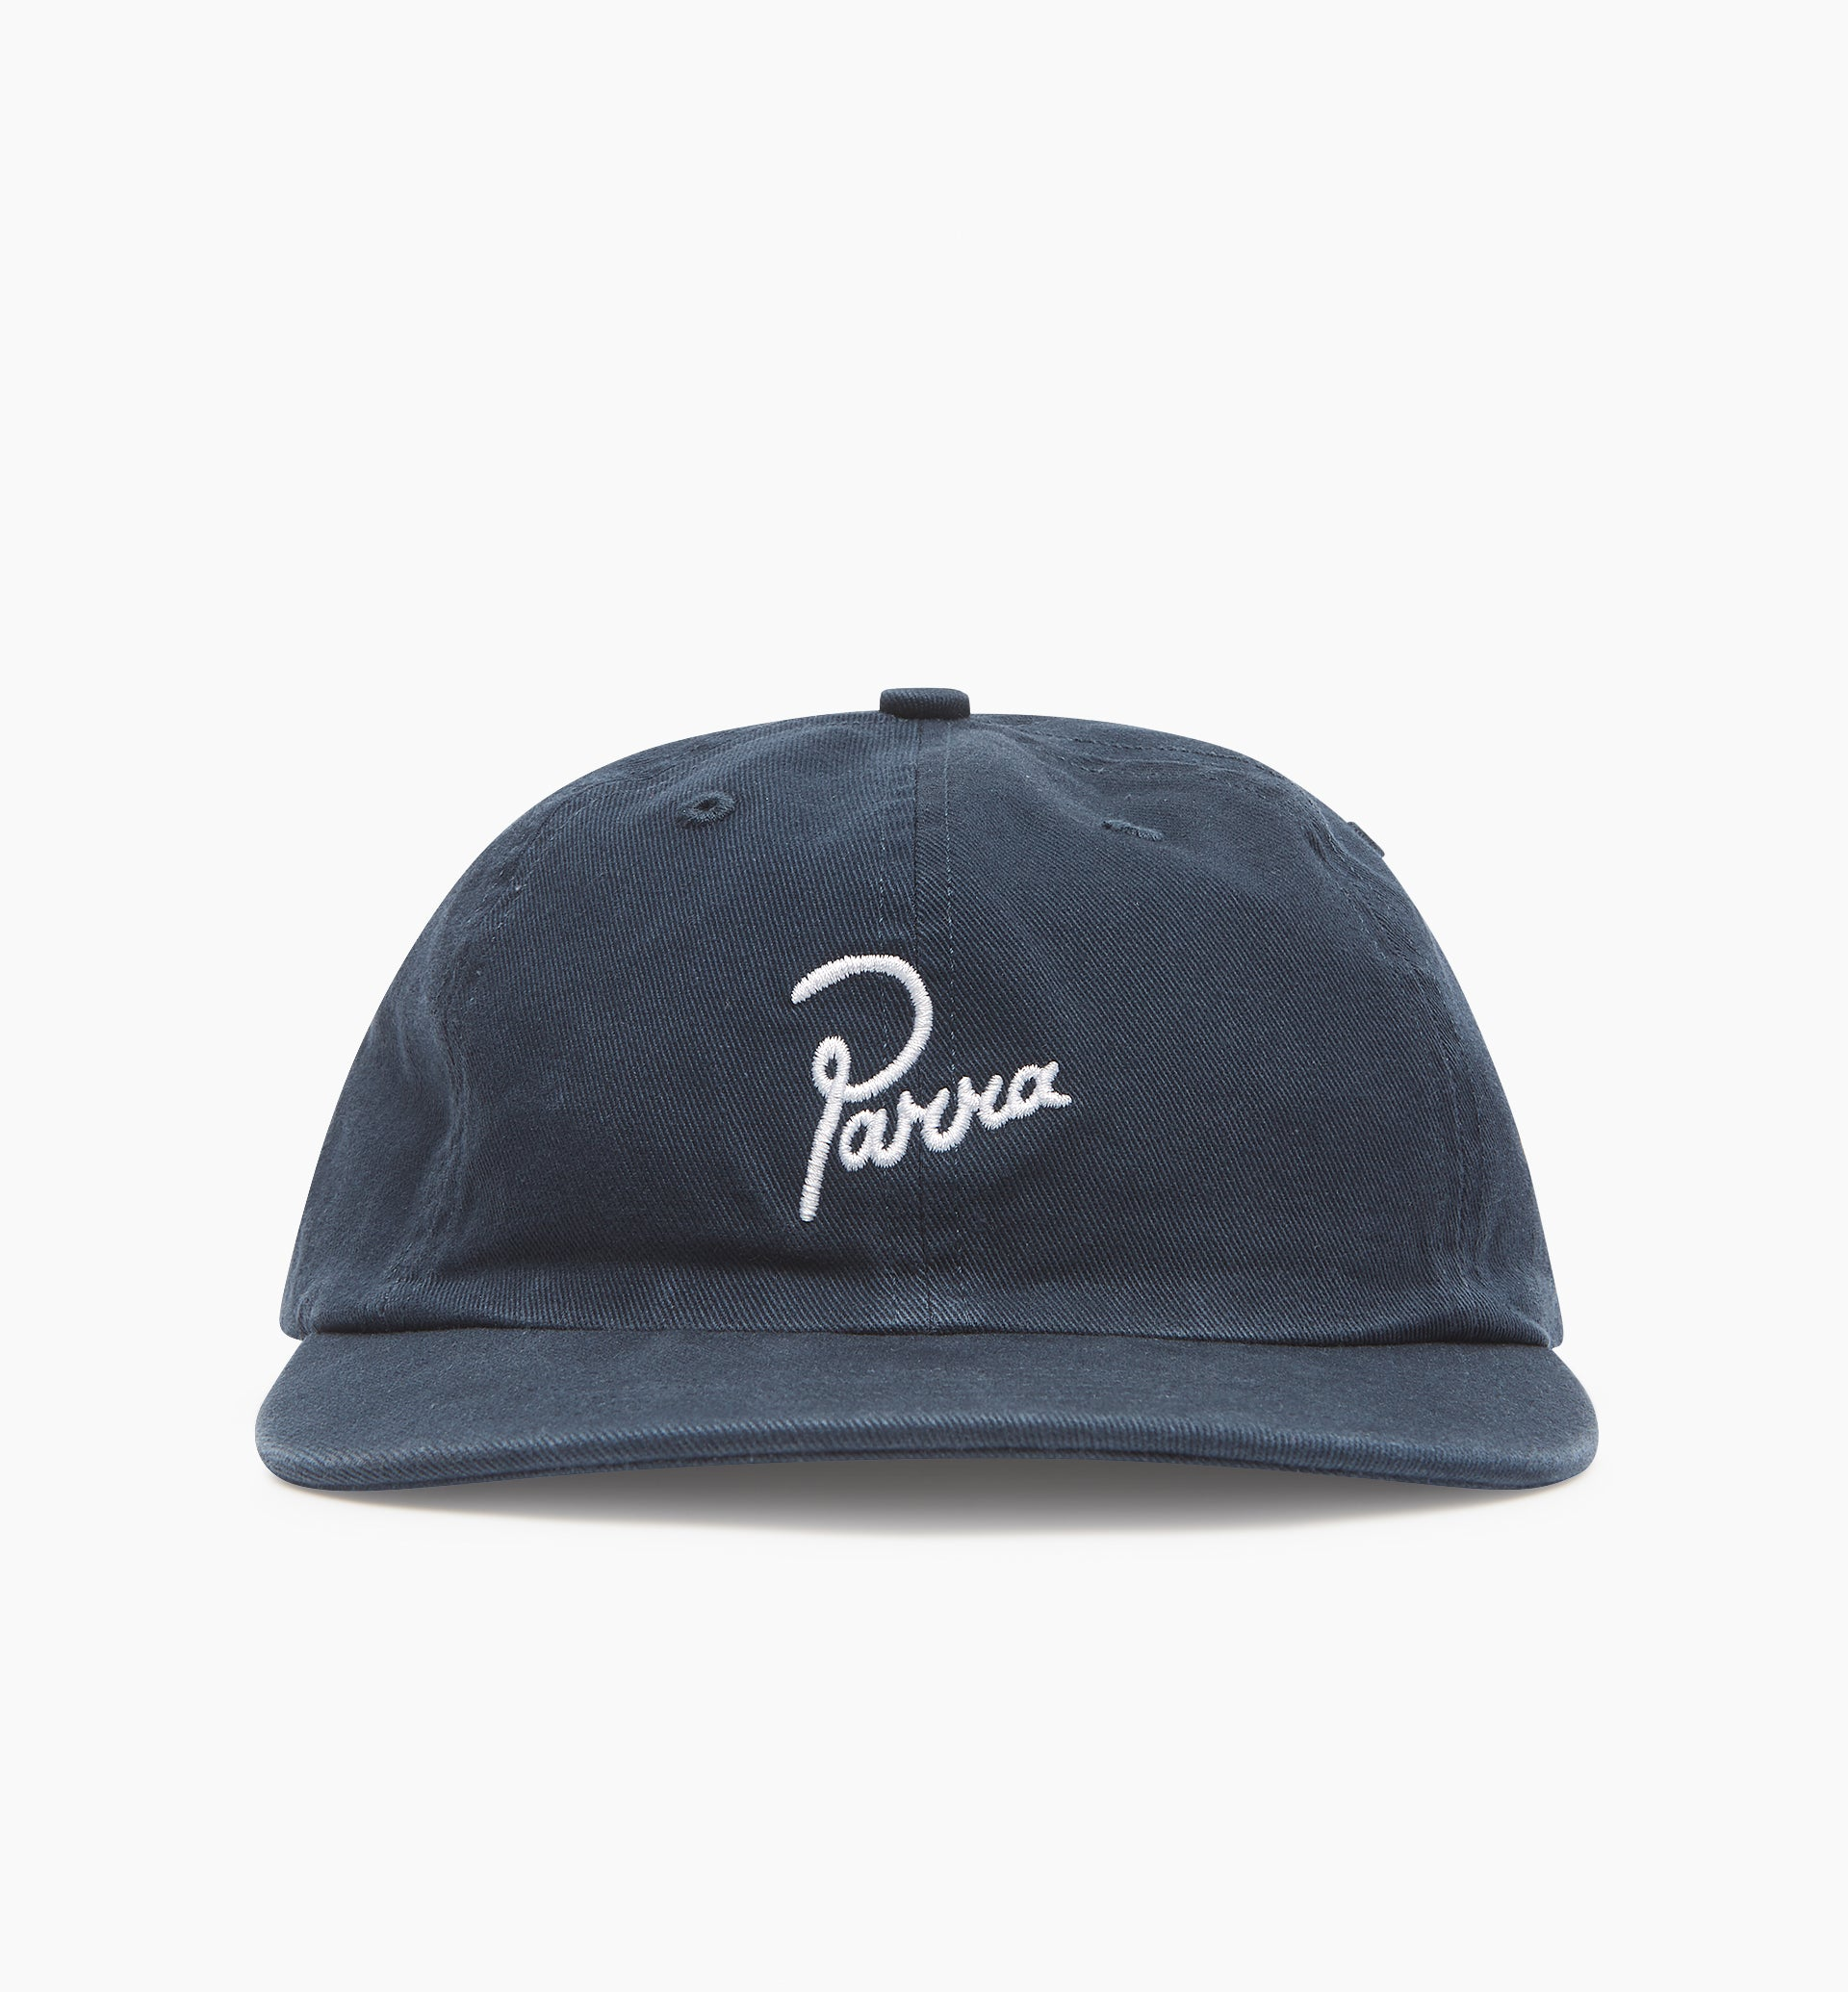 Parra - washed signature logo hat